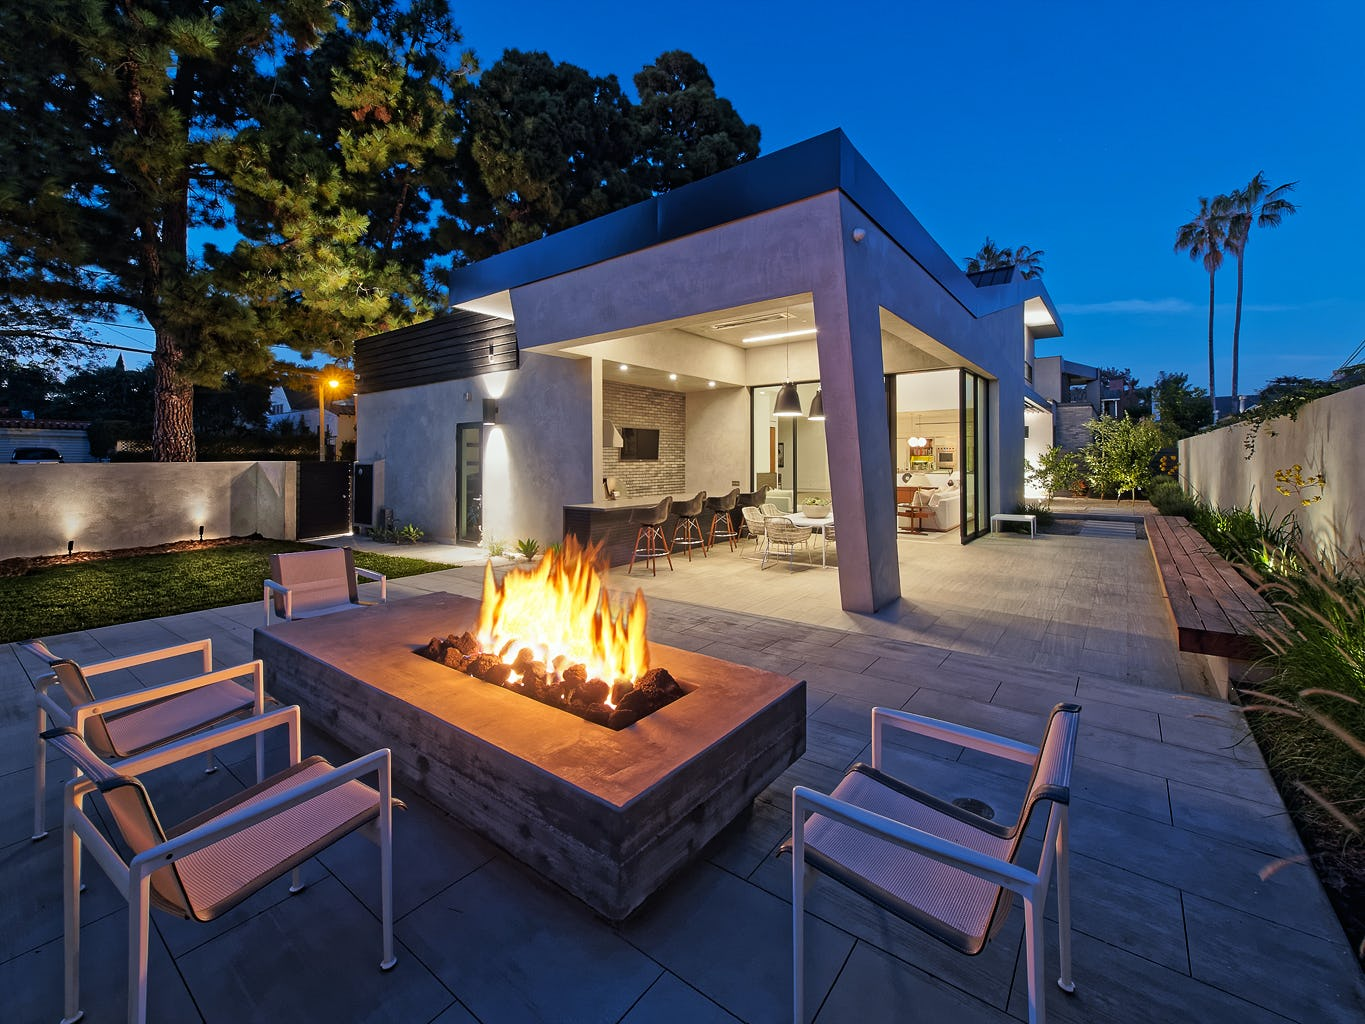 14 fire pit patio  1024h